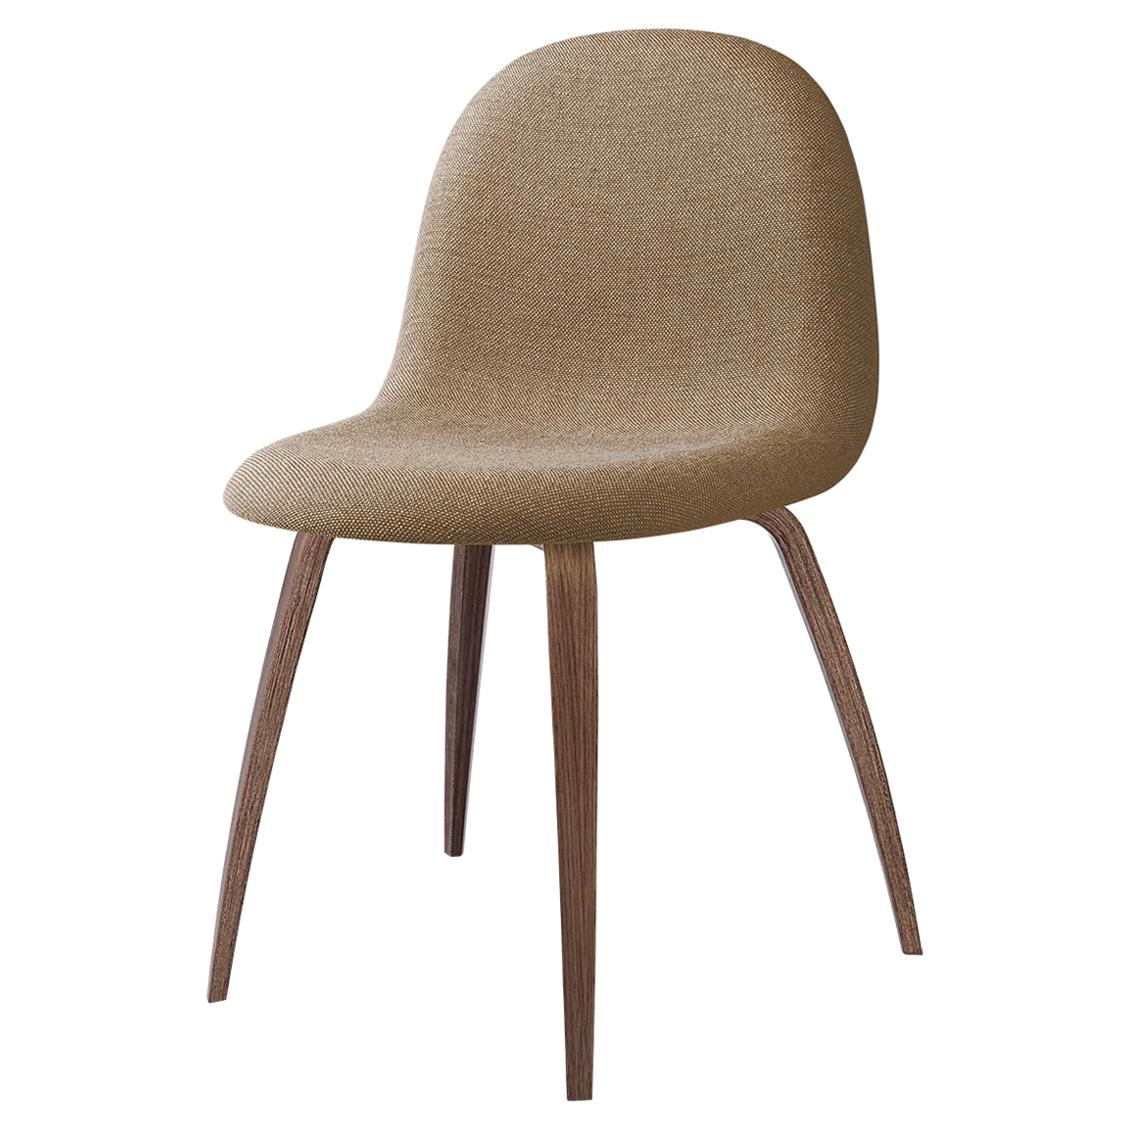 3D Dining Chair, Fully Upholstered, Wood Base, American Walnut